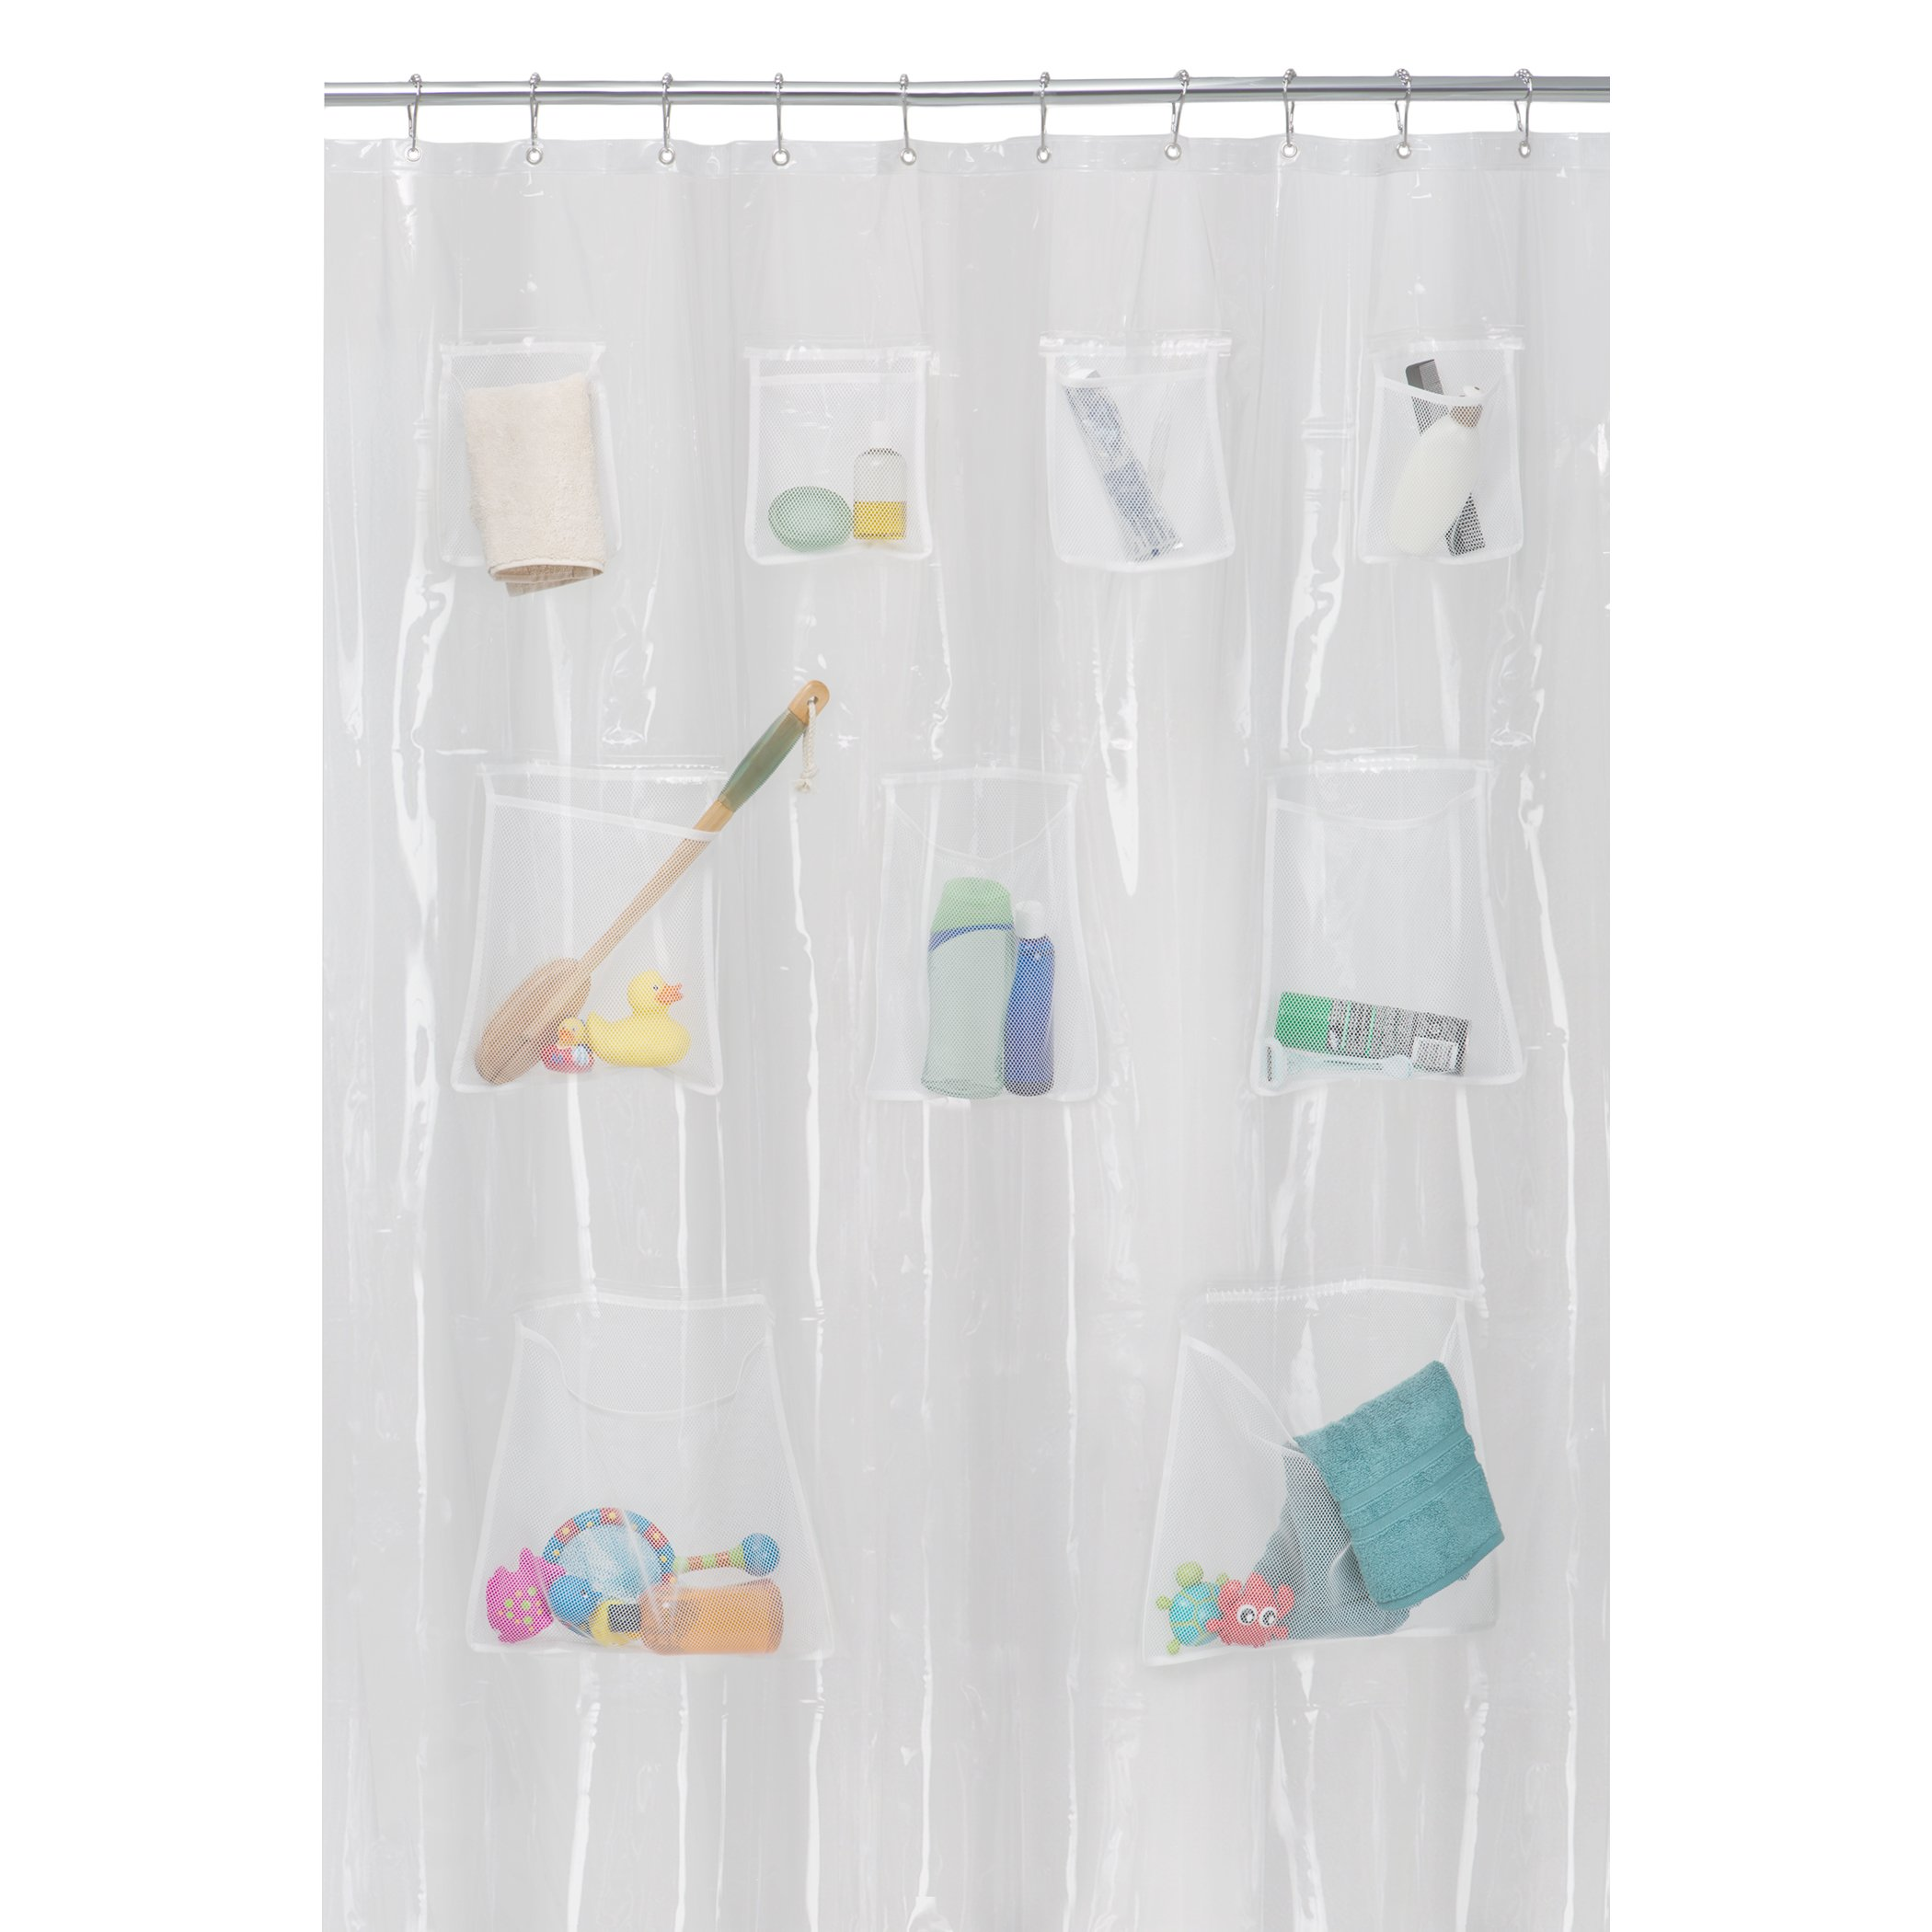 MAYTEX Quick Dry Mesh Pockets PEVA Shower Curtain or Liner, Bath/Shower Organizer, Clear, 70 inches x 72 inches by MAYTEX